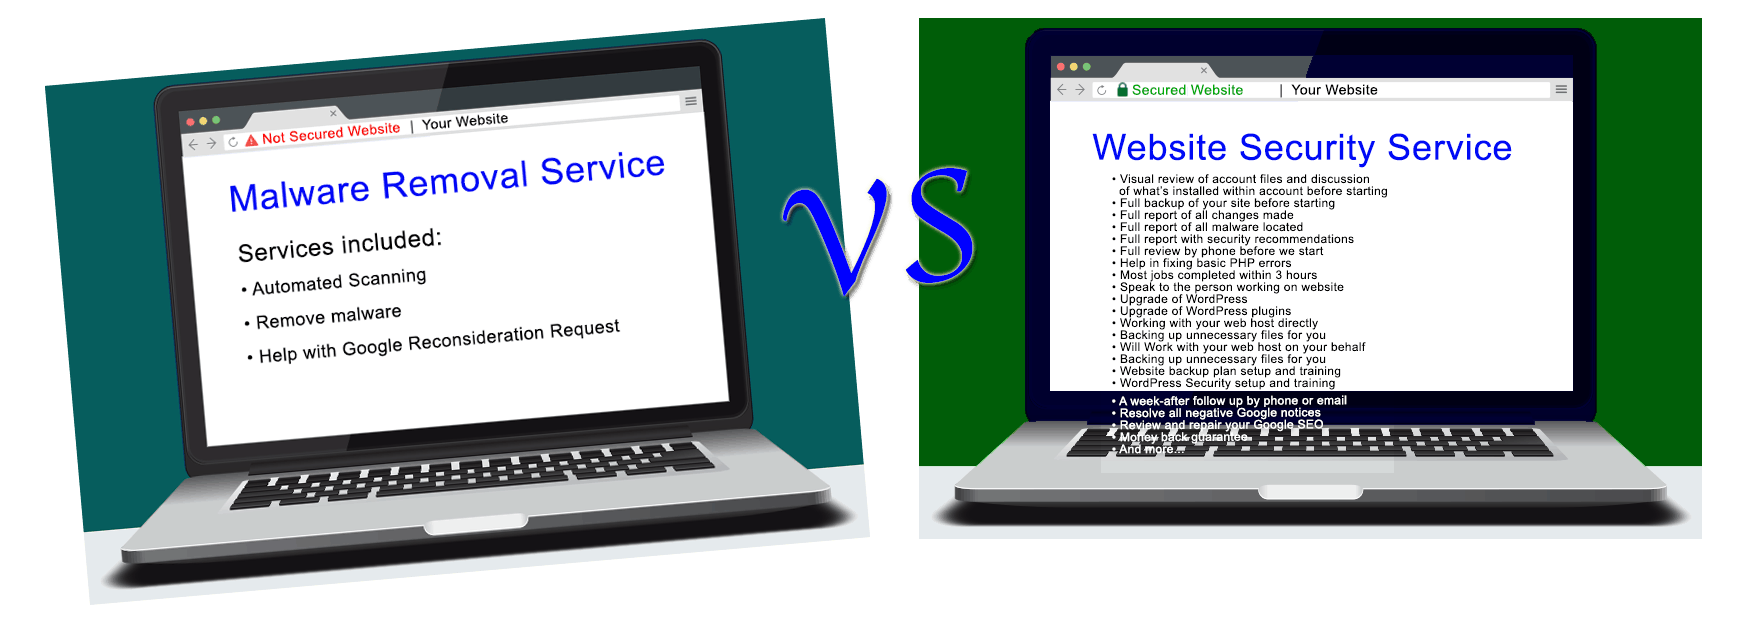 malware removal service versus website security service